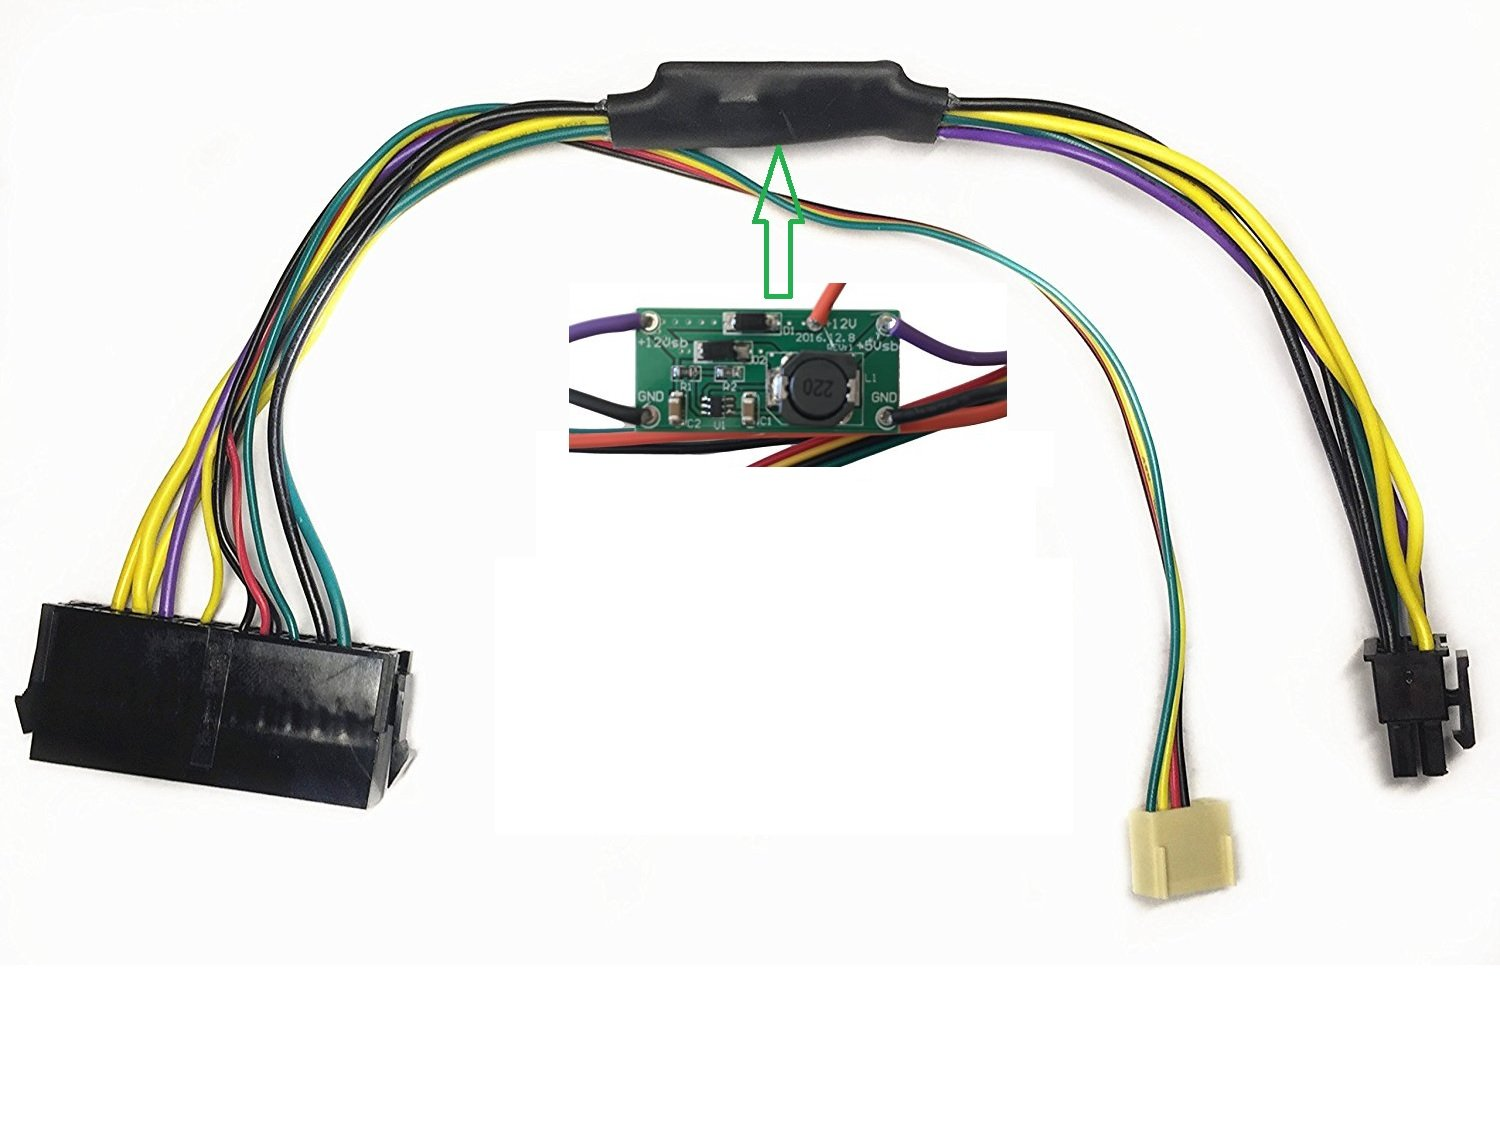 Amazon.com: EZSync ATX PSU (24-Pin) to HP Motherboard (6-Pin PCI-E on atx power switch, atx power supply specification, asus wiring diagram, motherboard wiring diagram, 4 pin atx diagram, circuit diagram, atx power supply wire color, ethernet port wiring diagram, power inverter wiring diagram, power supply pin diagram, dell power supply diagram, accessories wiring diagram, pc power supply connector diagram, atx power supply dimensions, at power supply pinout diagram, power supply block diagram, atx connector diagram, atx power supply maintenance, power strip wiring diagram, atx power supply manual,